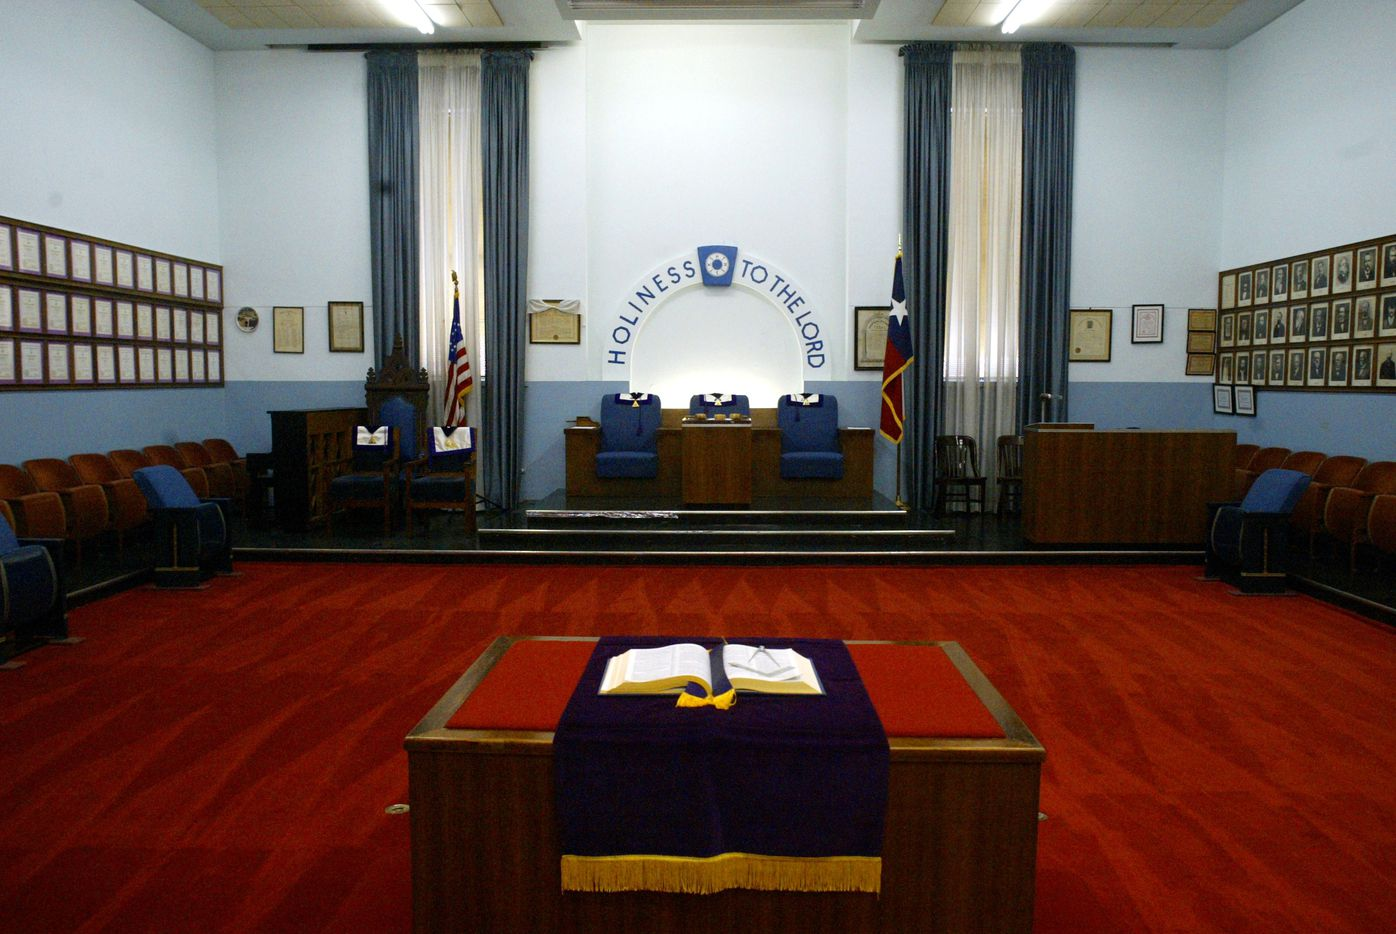 The interior of the building originally housed five lodge rooms.